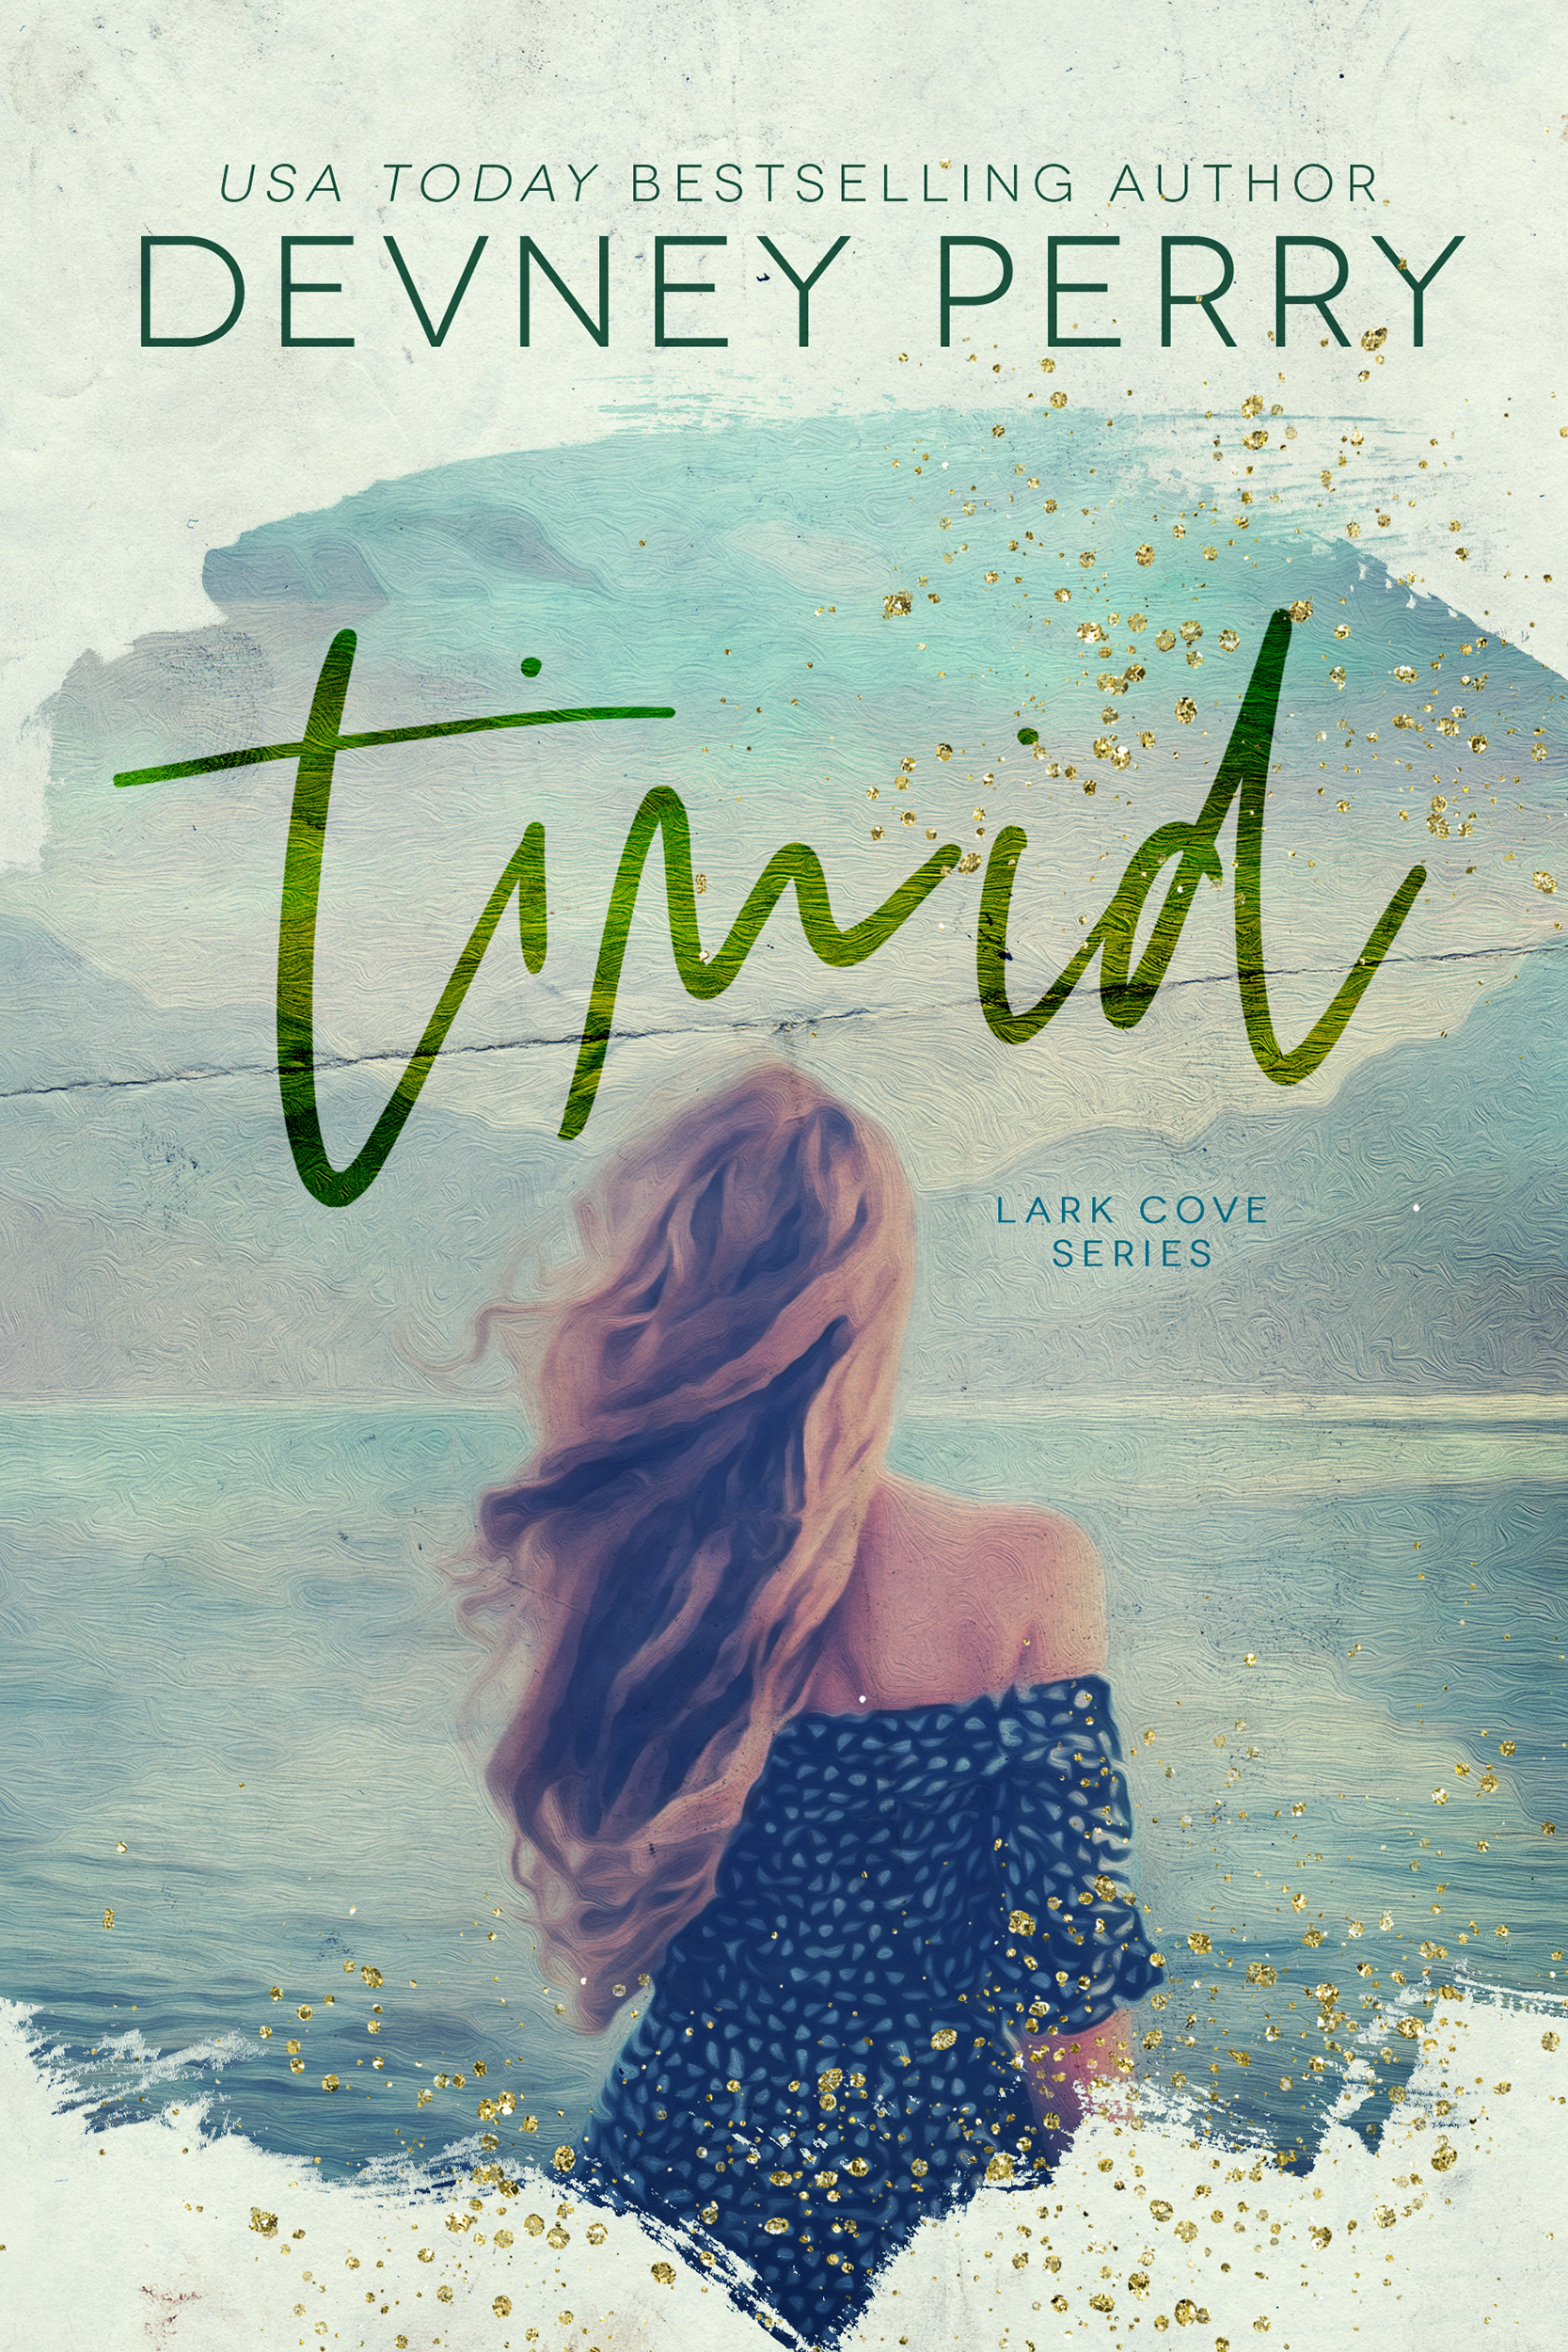 Timid - Cover.jpg